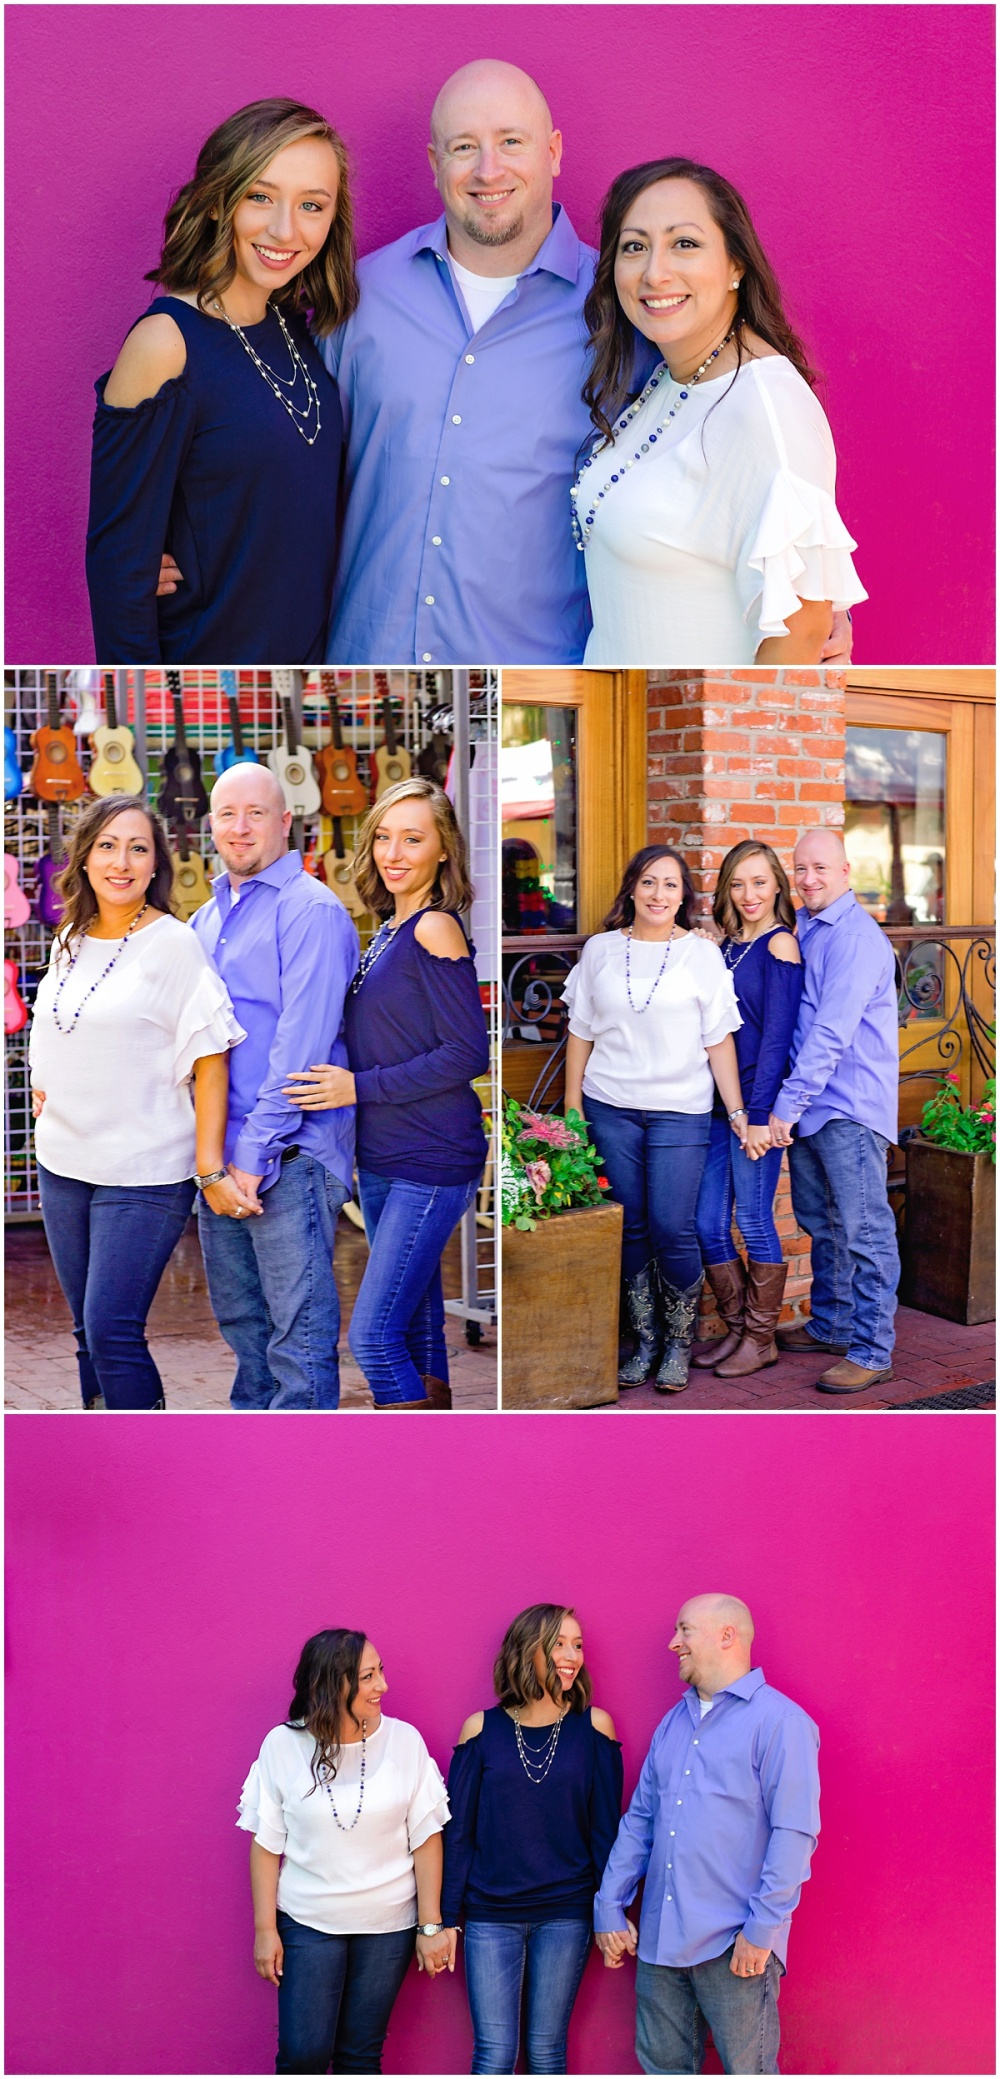 Family-Children-Maternity-Portraits-San-Antonio-Hill-Country-Texas-Carly-Barton-Photography_0068.jpg